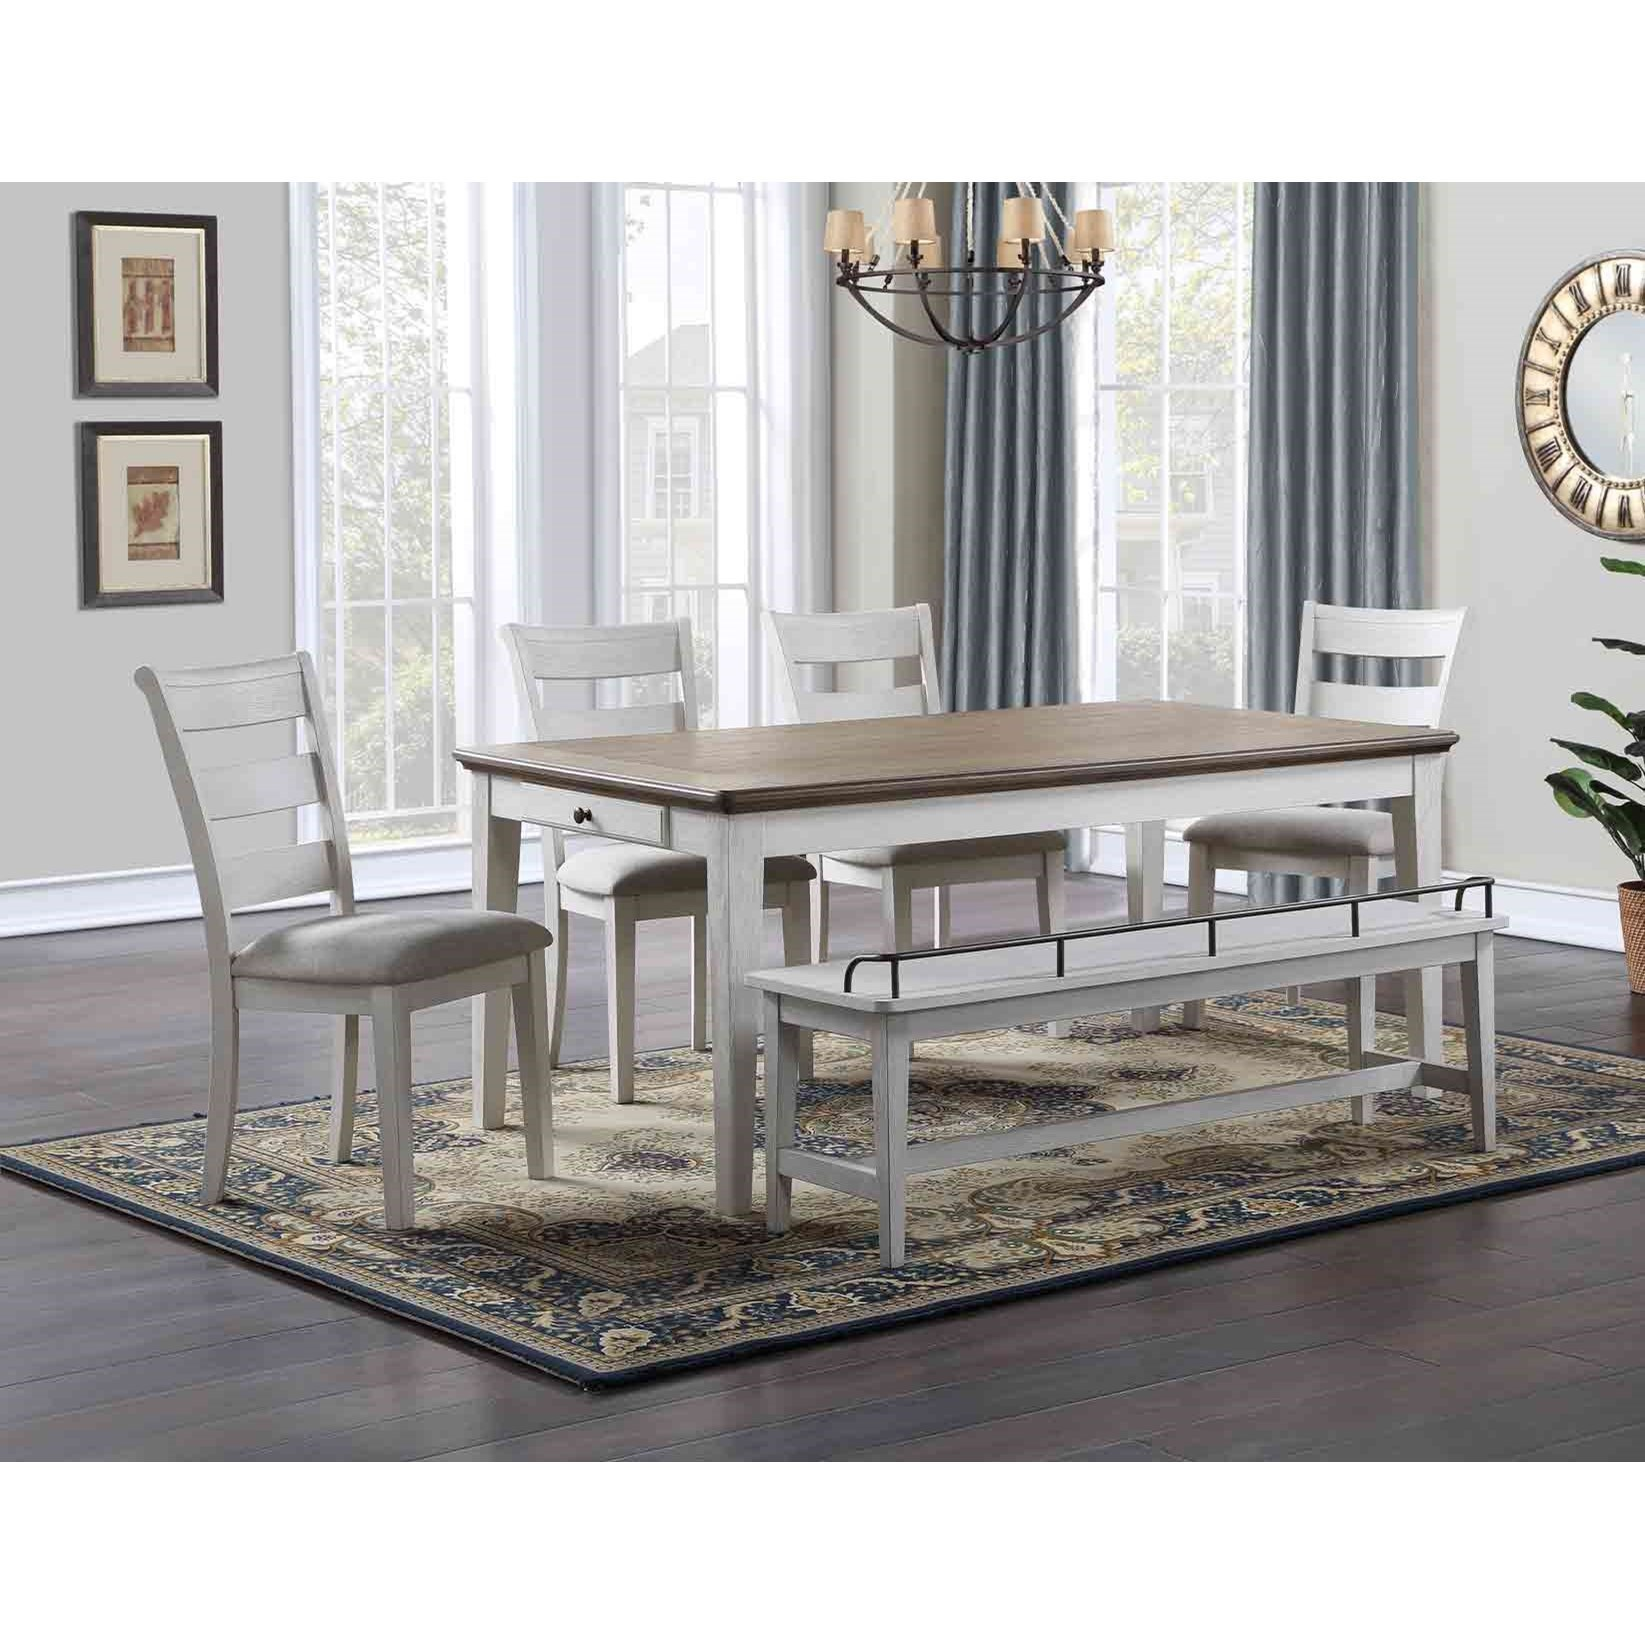 Modern Farmhouse 6-Piece Formal Dining Set with Bench